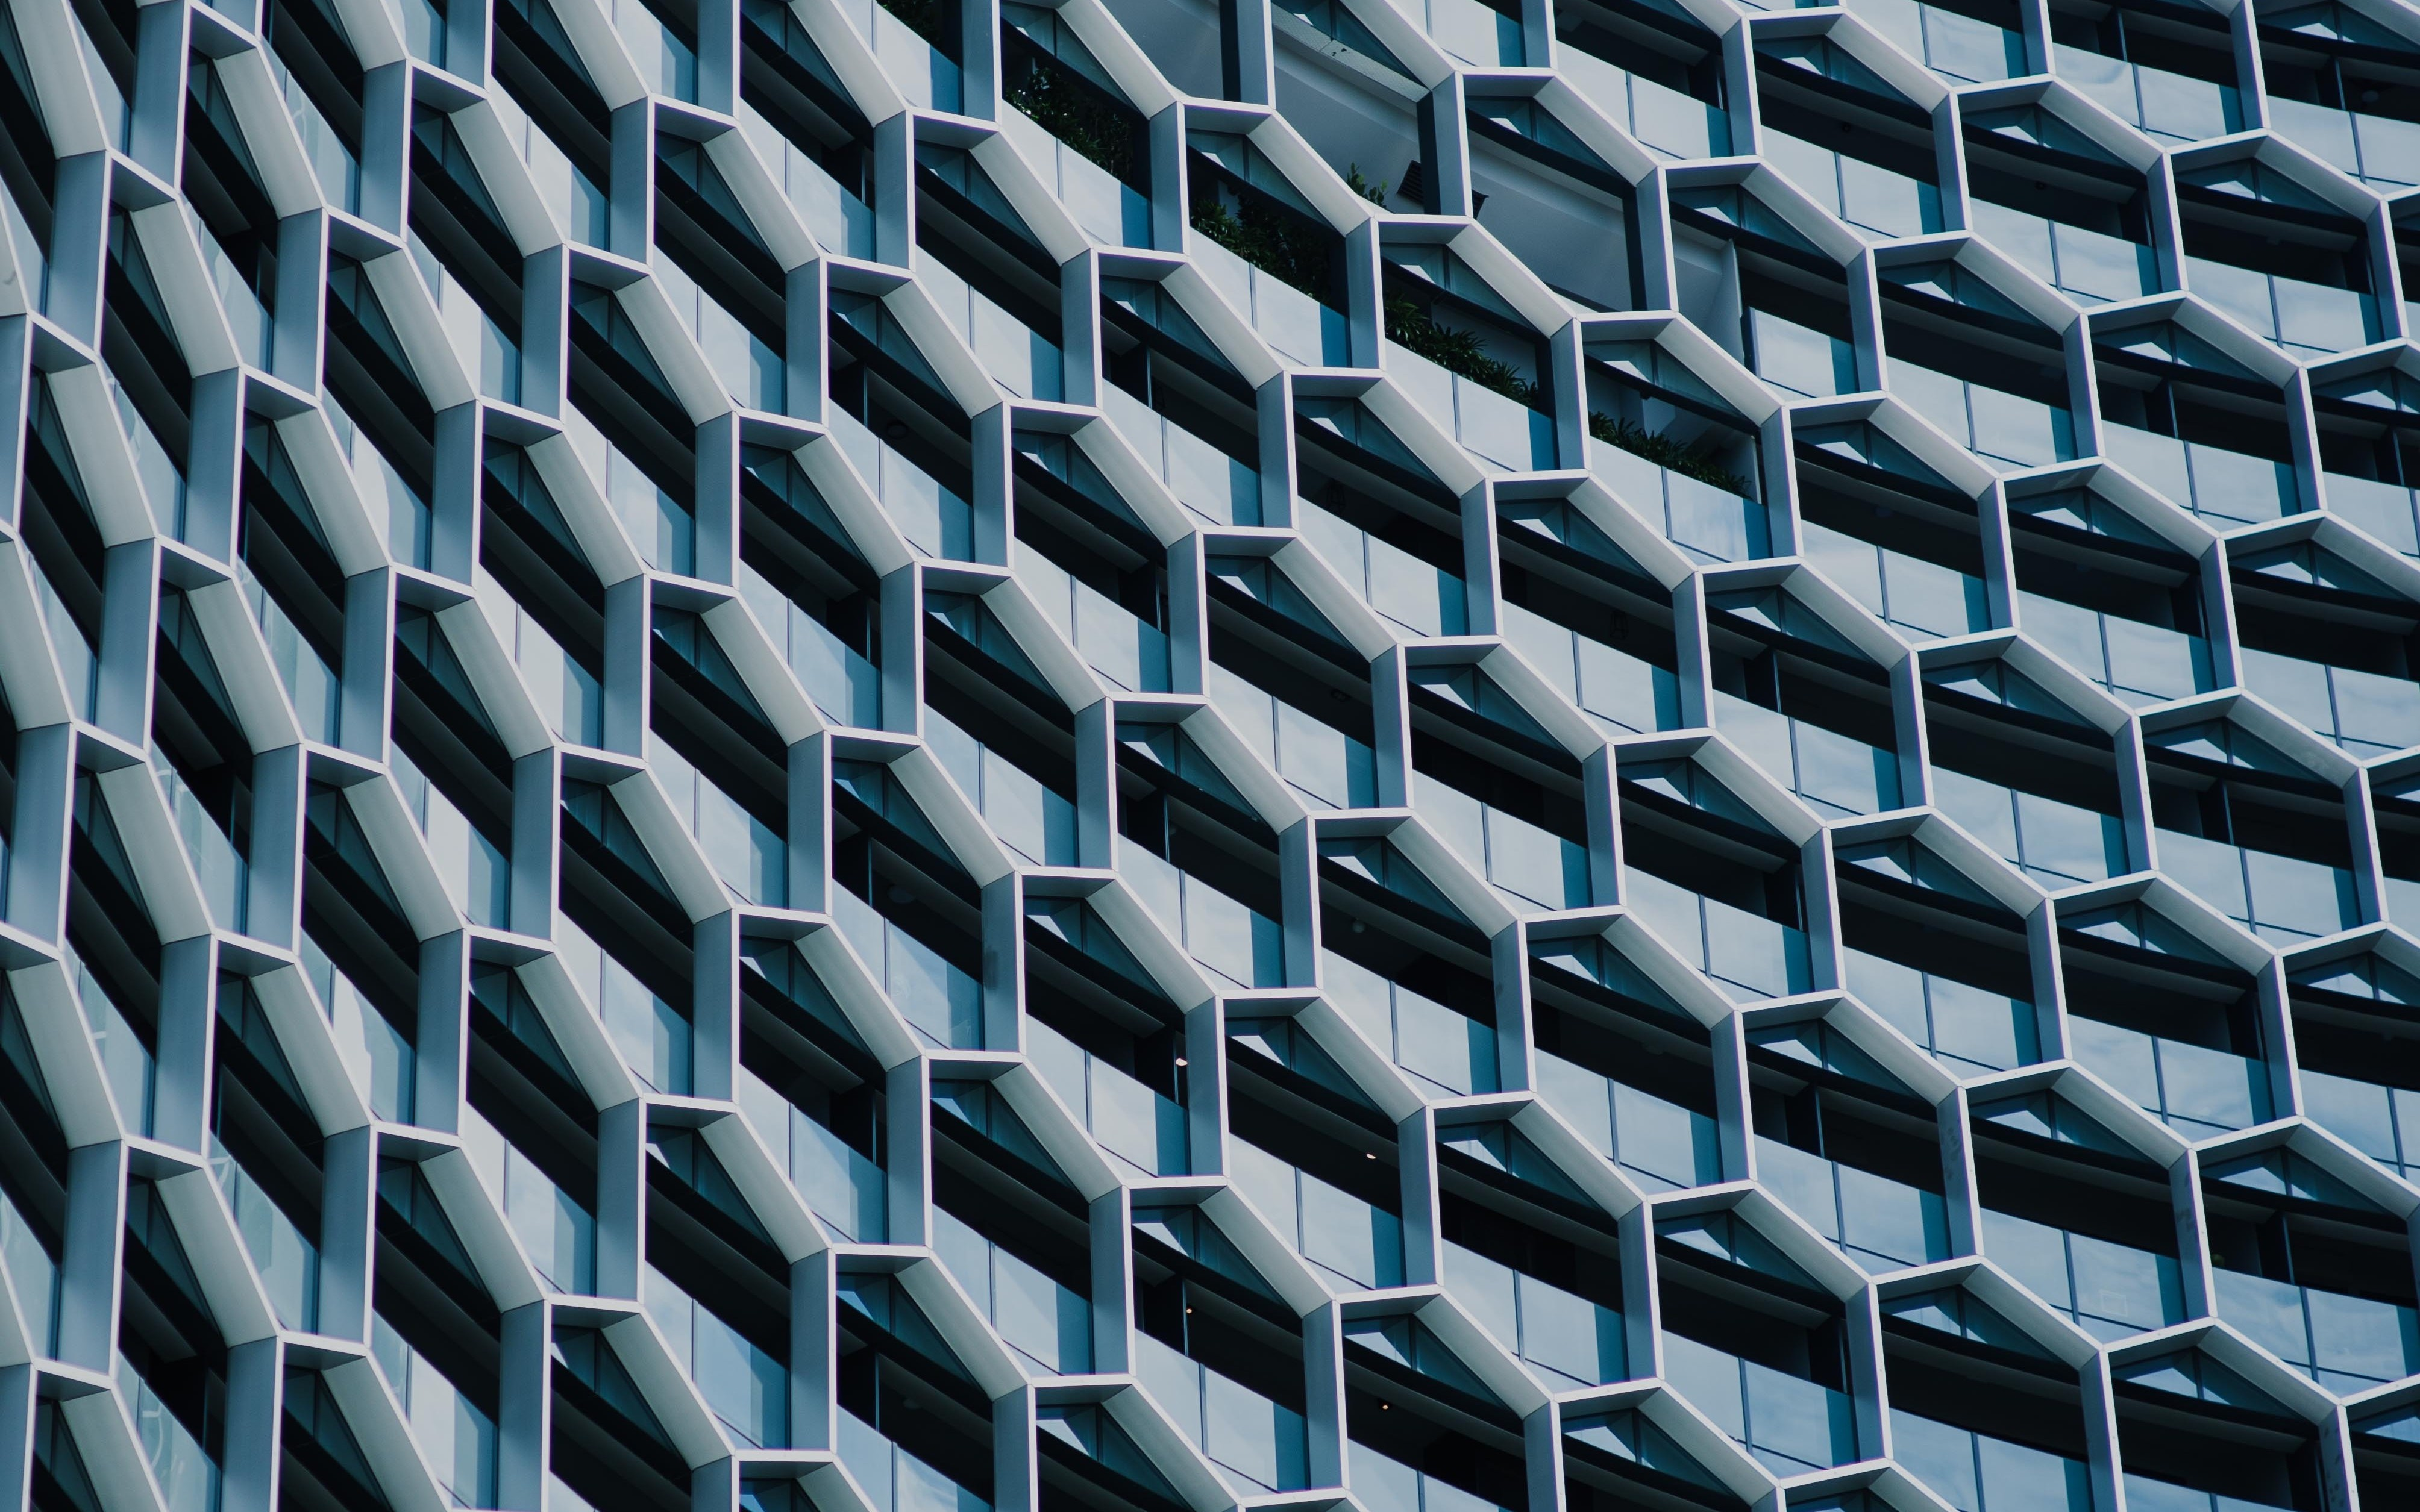 Applying Hexagonal Architecture to a Symfony Project